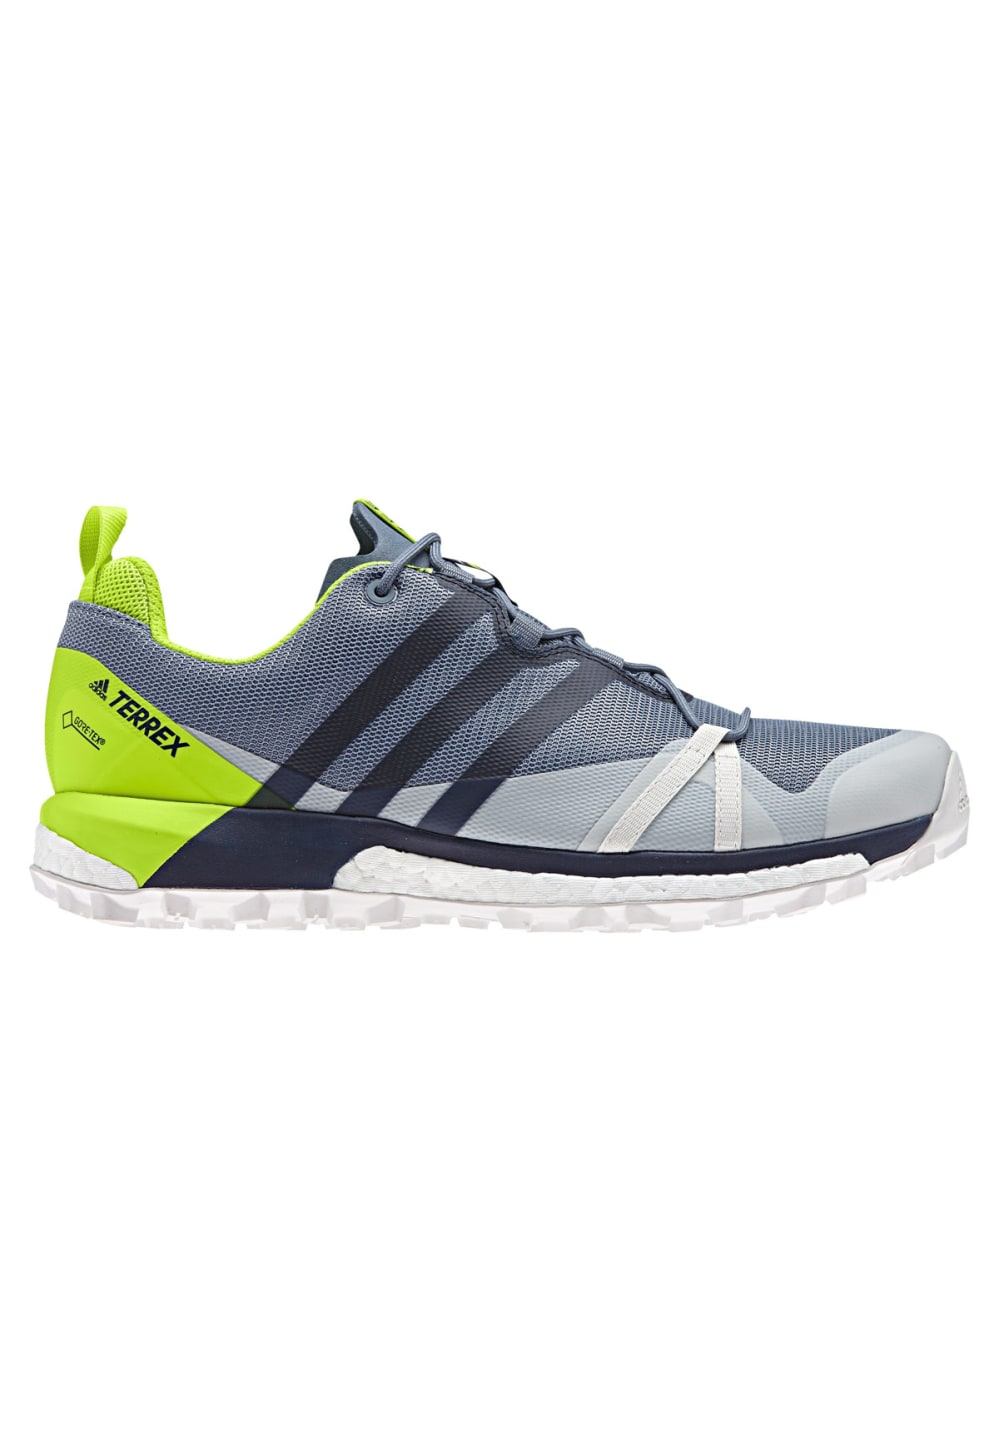 bd967afda9a adidas TERREX Terrex Agravic GTX - Running shoes for Men - Grey